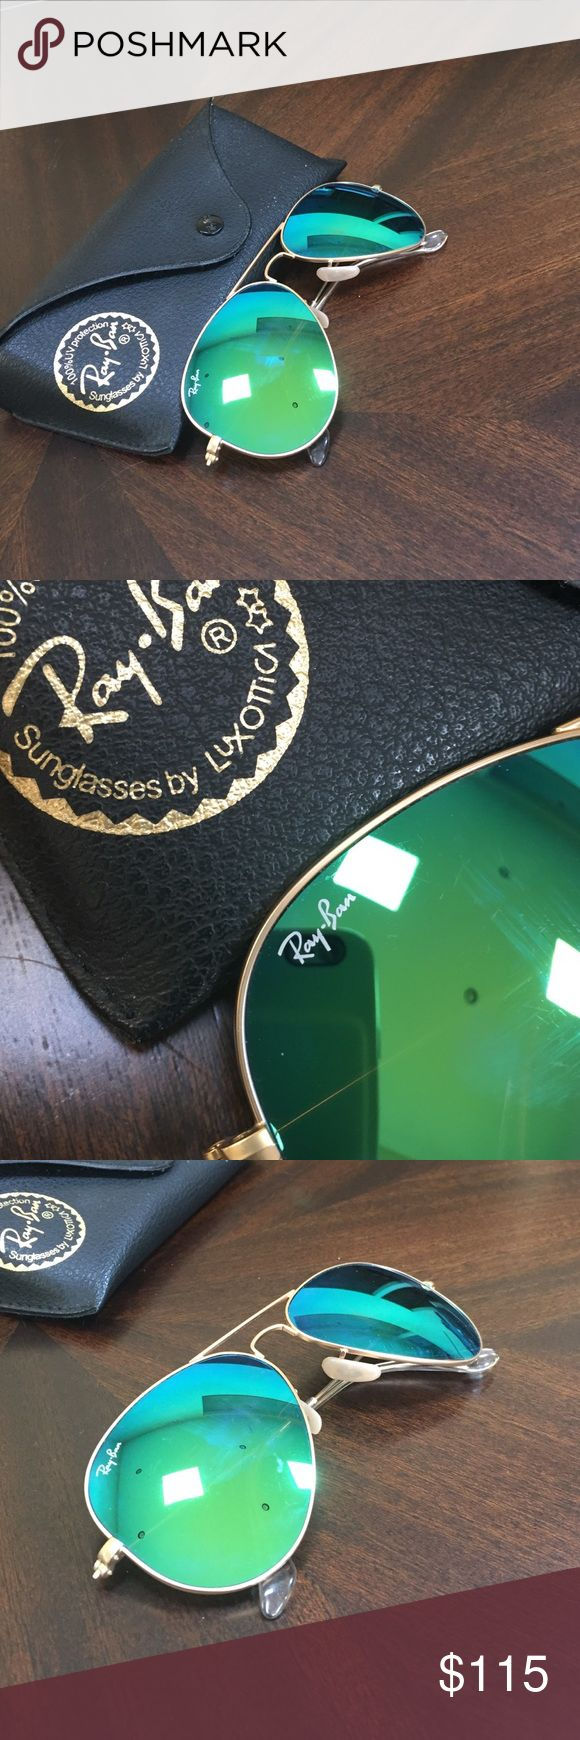 Mirrored ray bans! Great pair of authentic mirror ray bans! Lenses have minimal scratching. Ray-Ban Accessories Sunglasses